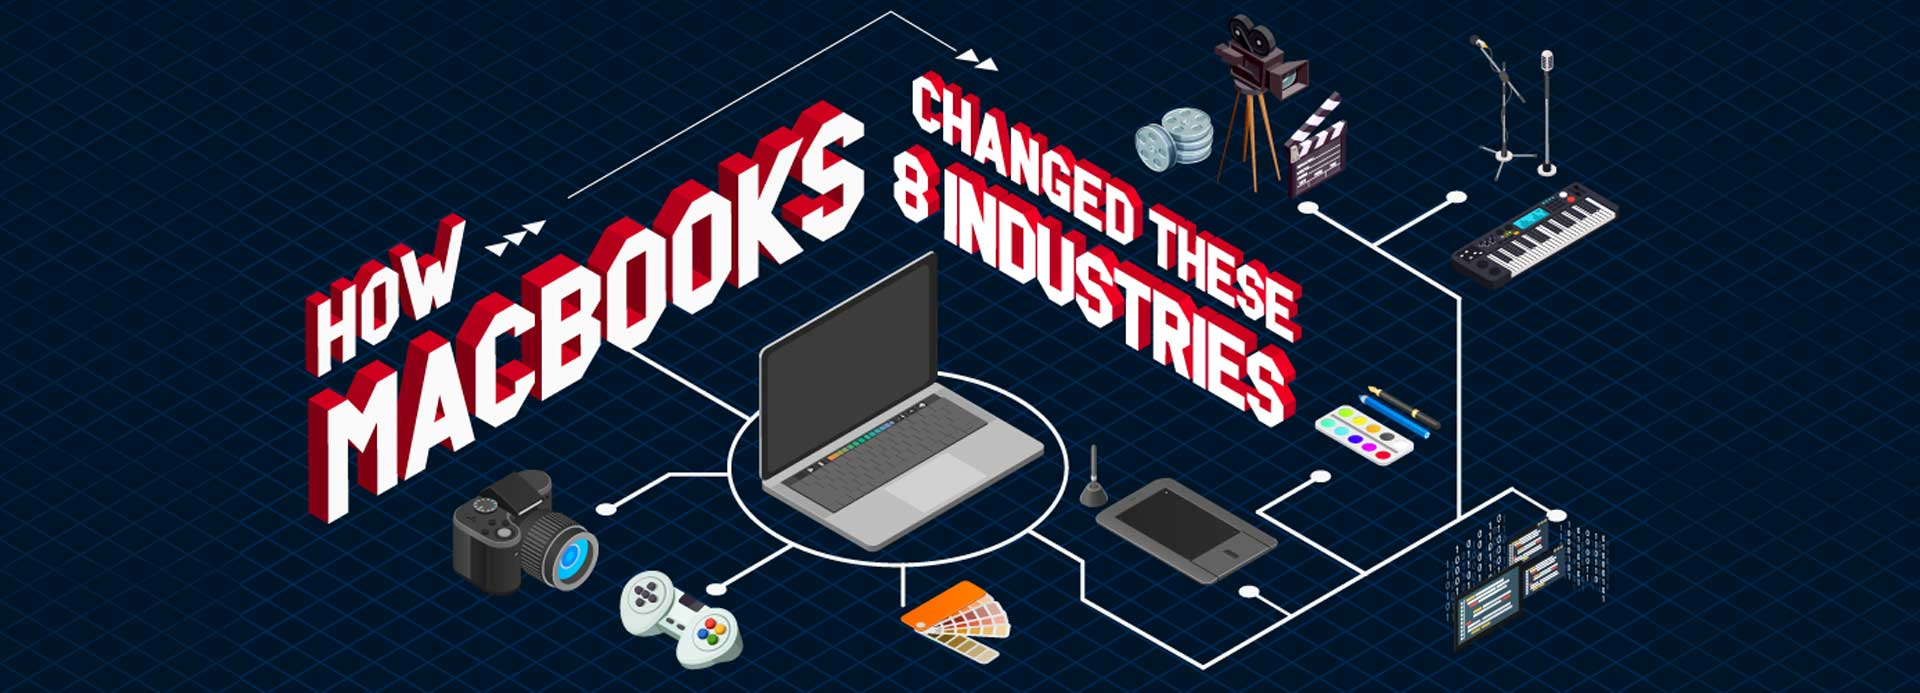 how Macbooks changed these-8 industries